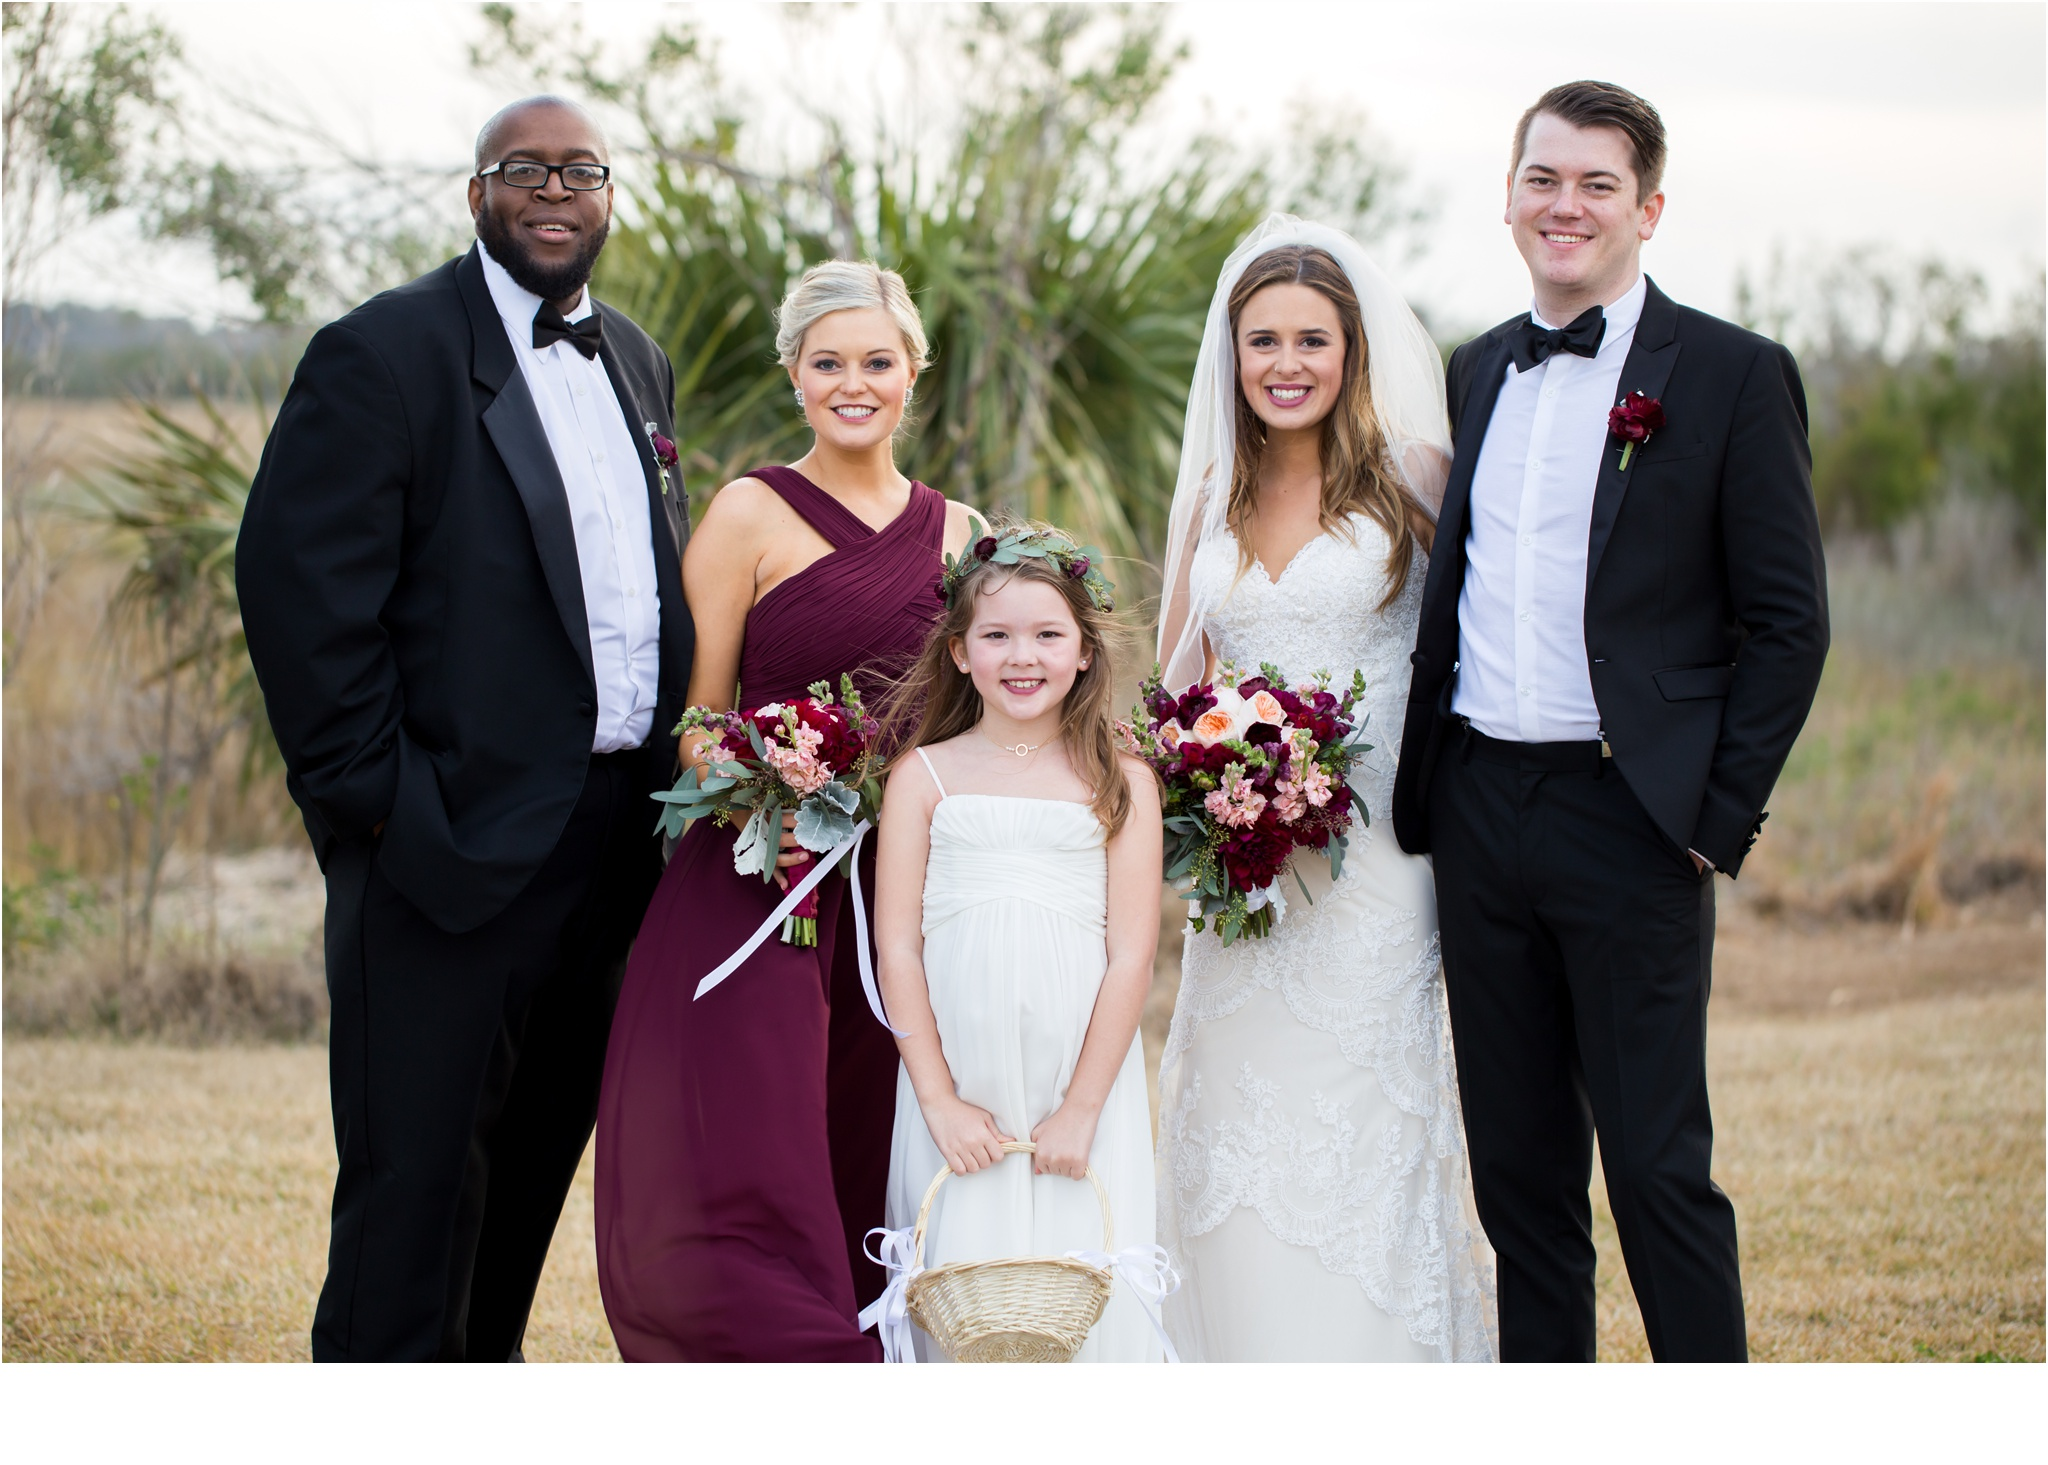 Rainey_Gregg_Photography_St._Simons_Island_Georgia_California_Wedding_Portrait_Photography_0869.jpg